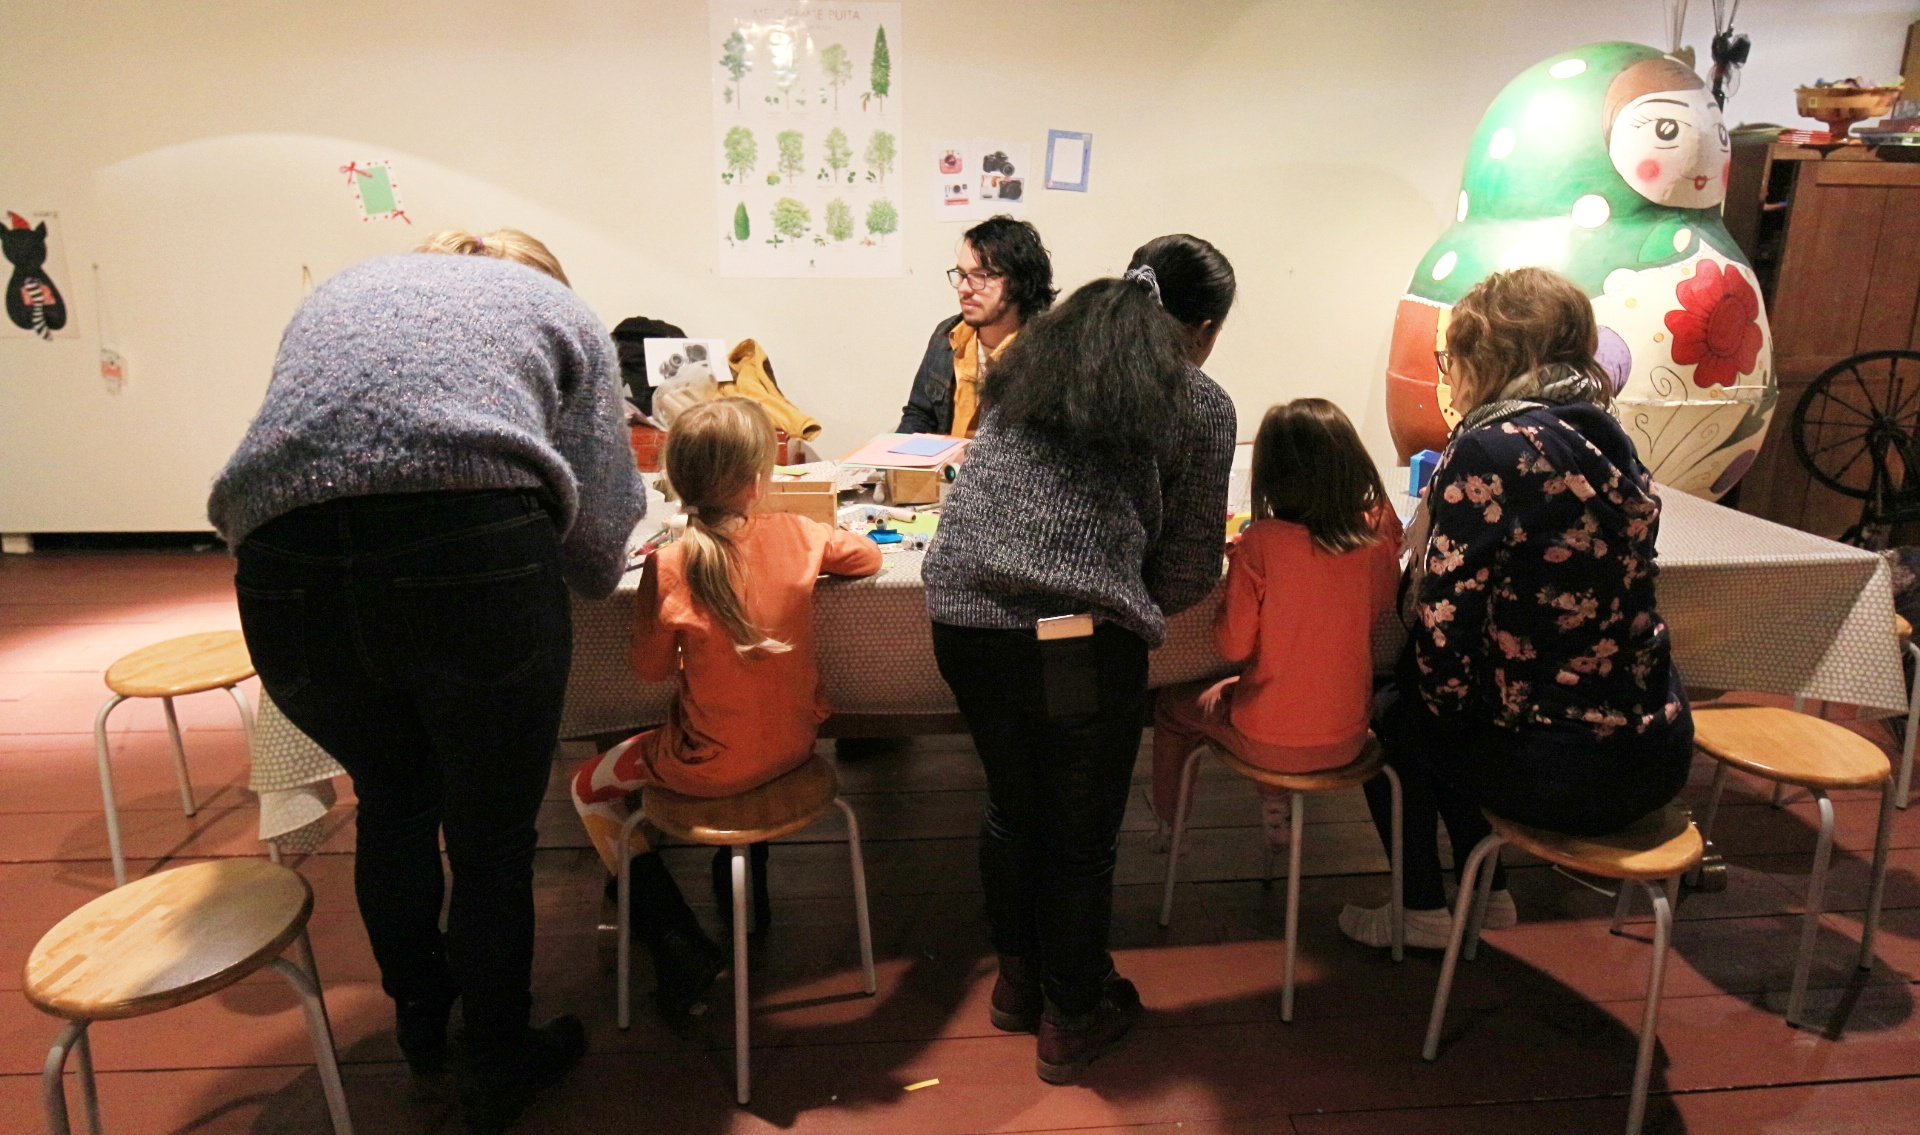 children and adults sit around a table making crafts.